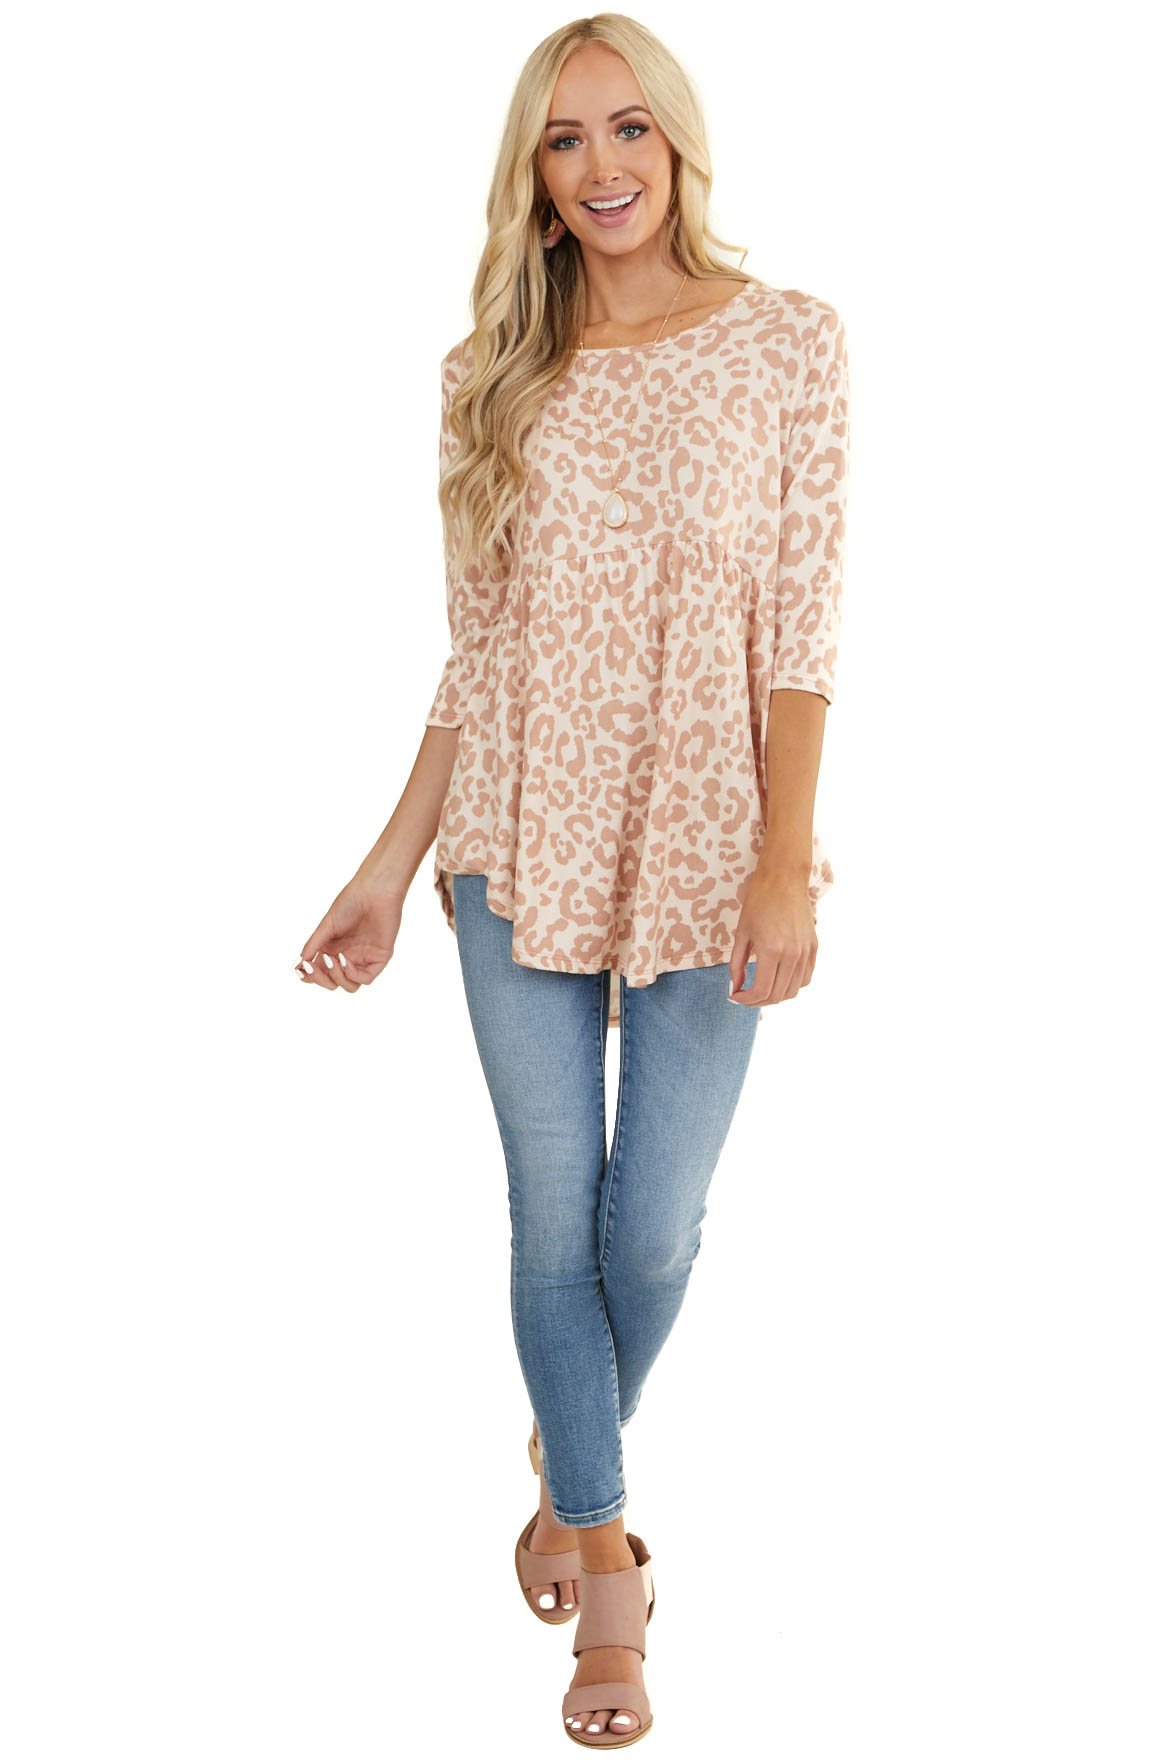 Apricot and Dusty Rose Leopard Print Babydoll Knit Top